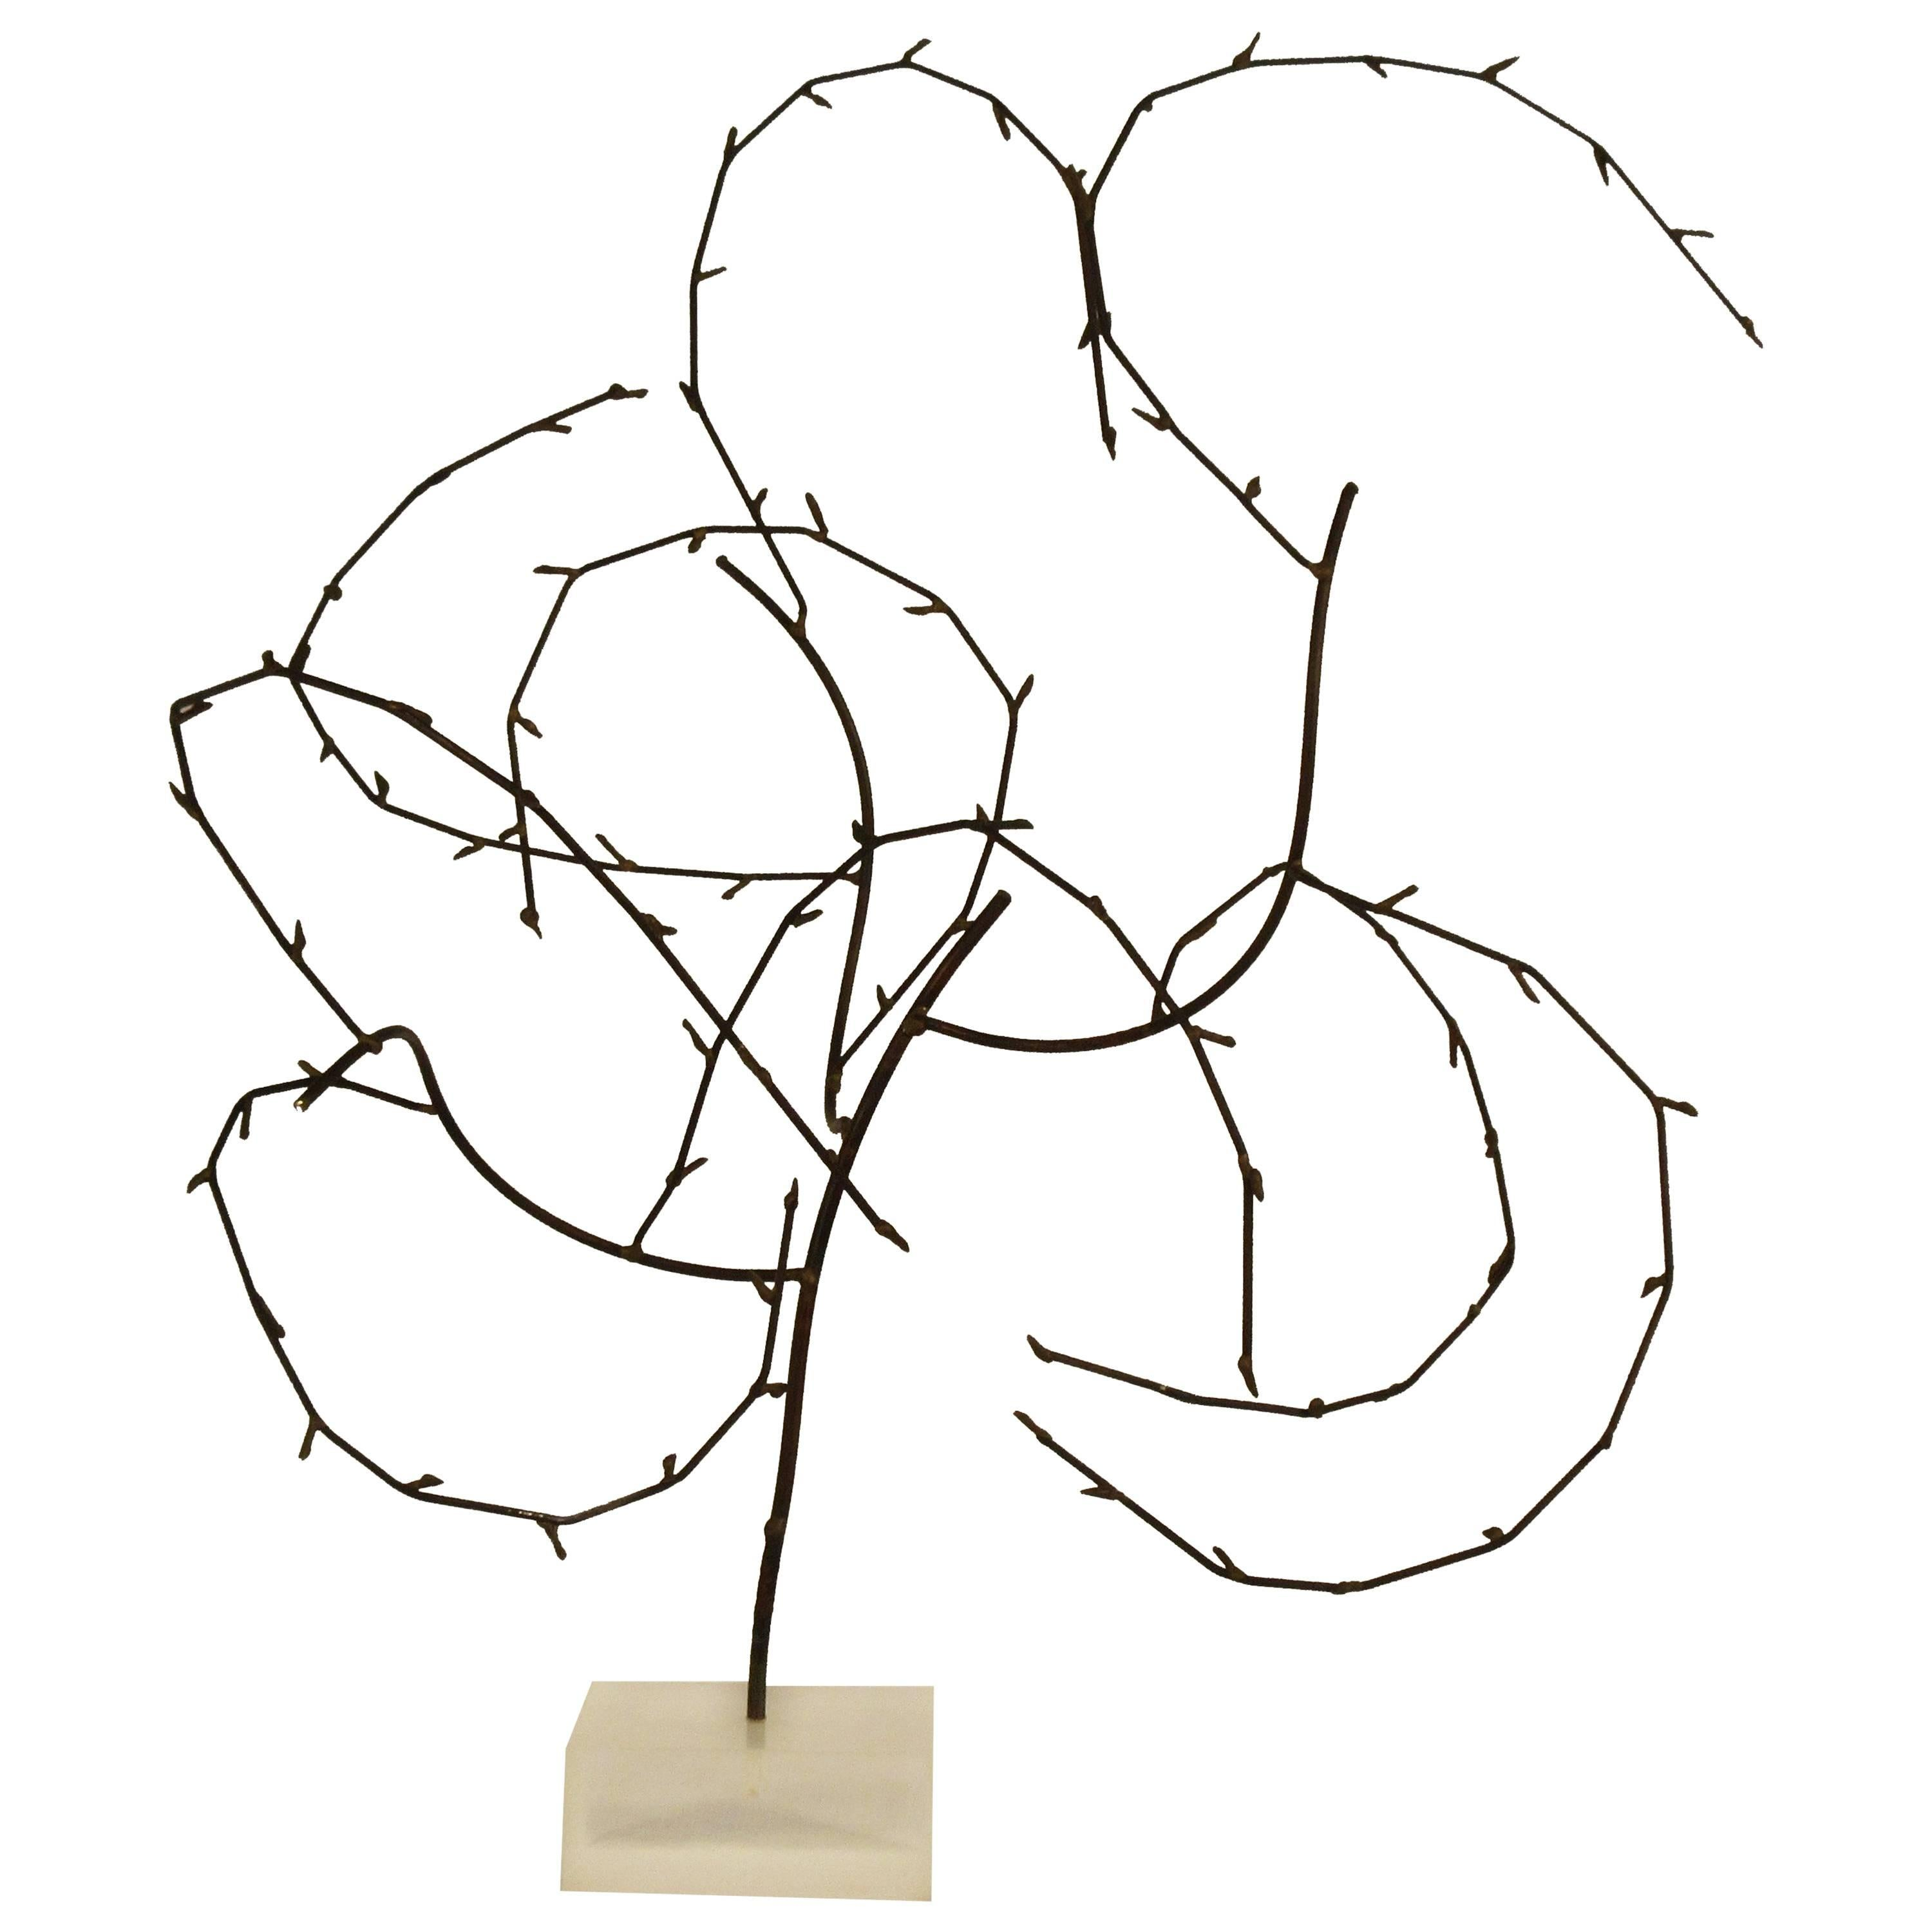 1970s Free-Form Abstract Sculpture on Lucite Base